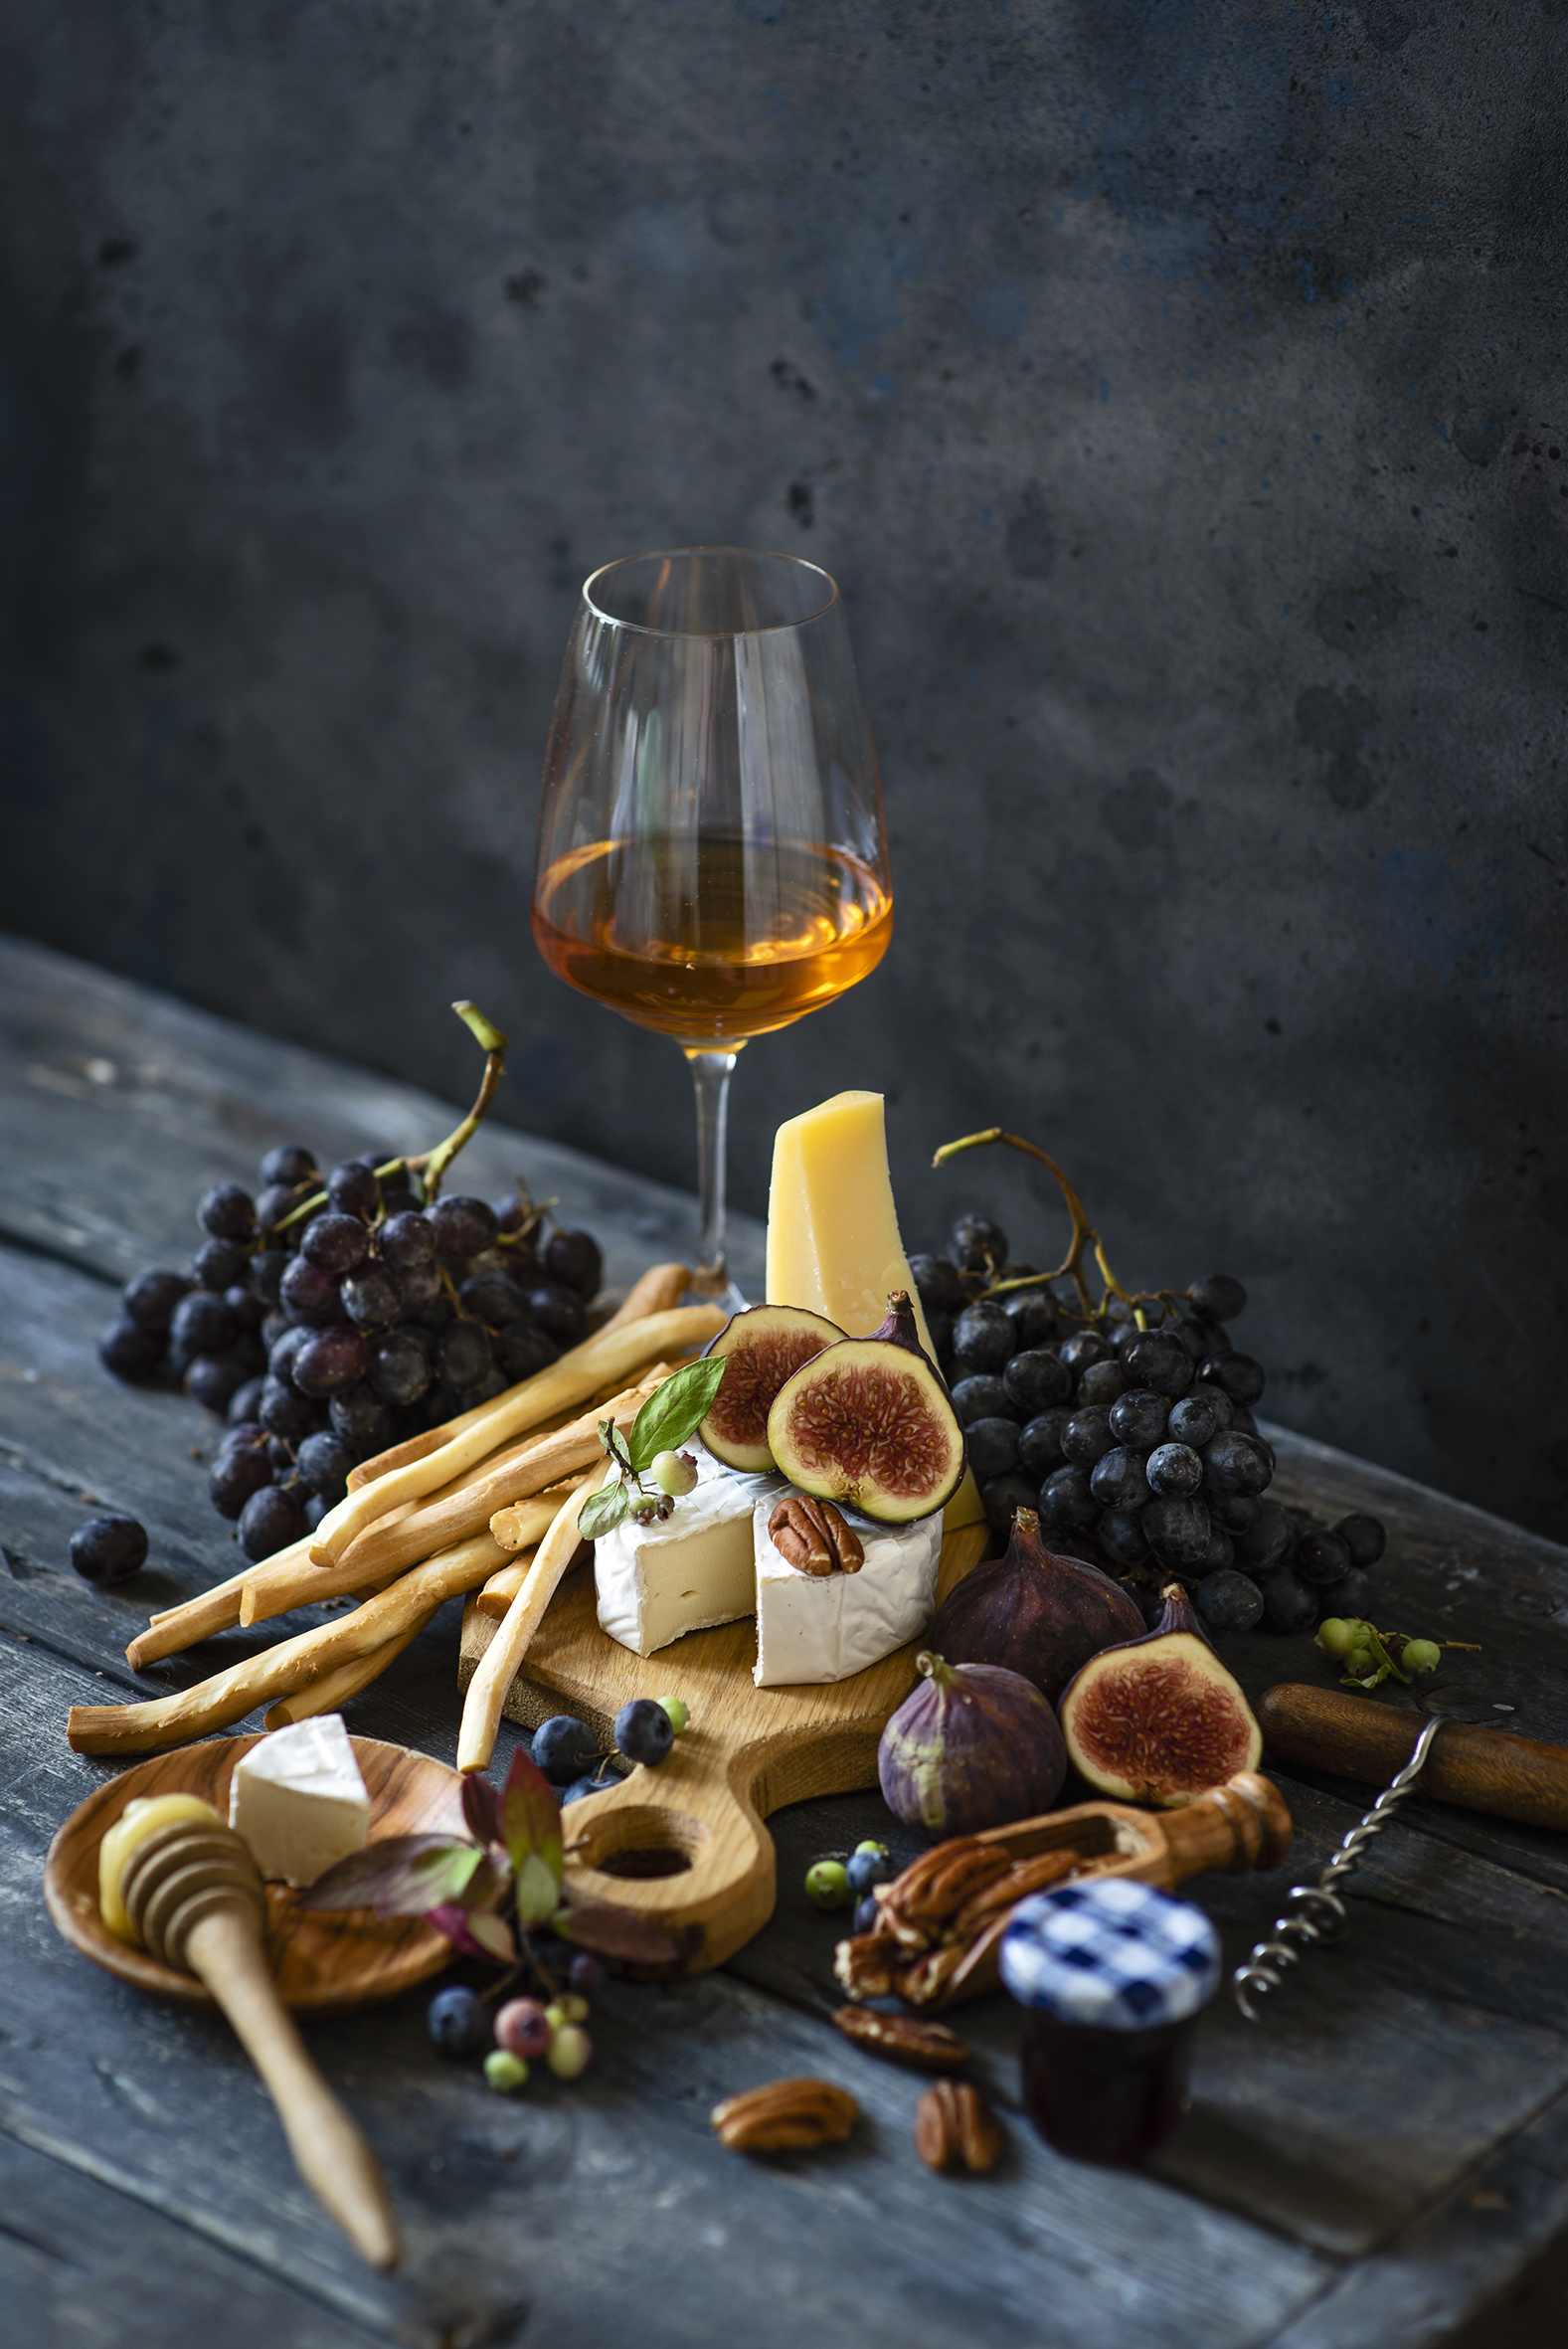 Picture Wine figs Grapes Cheese Food Stemware baking Still-life boards  for Mobile phone Common fig ficus carica Pastry Wood planks